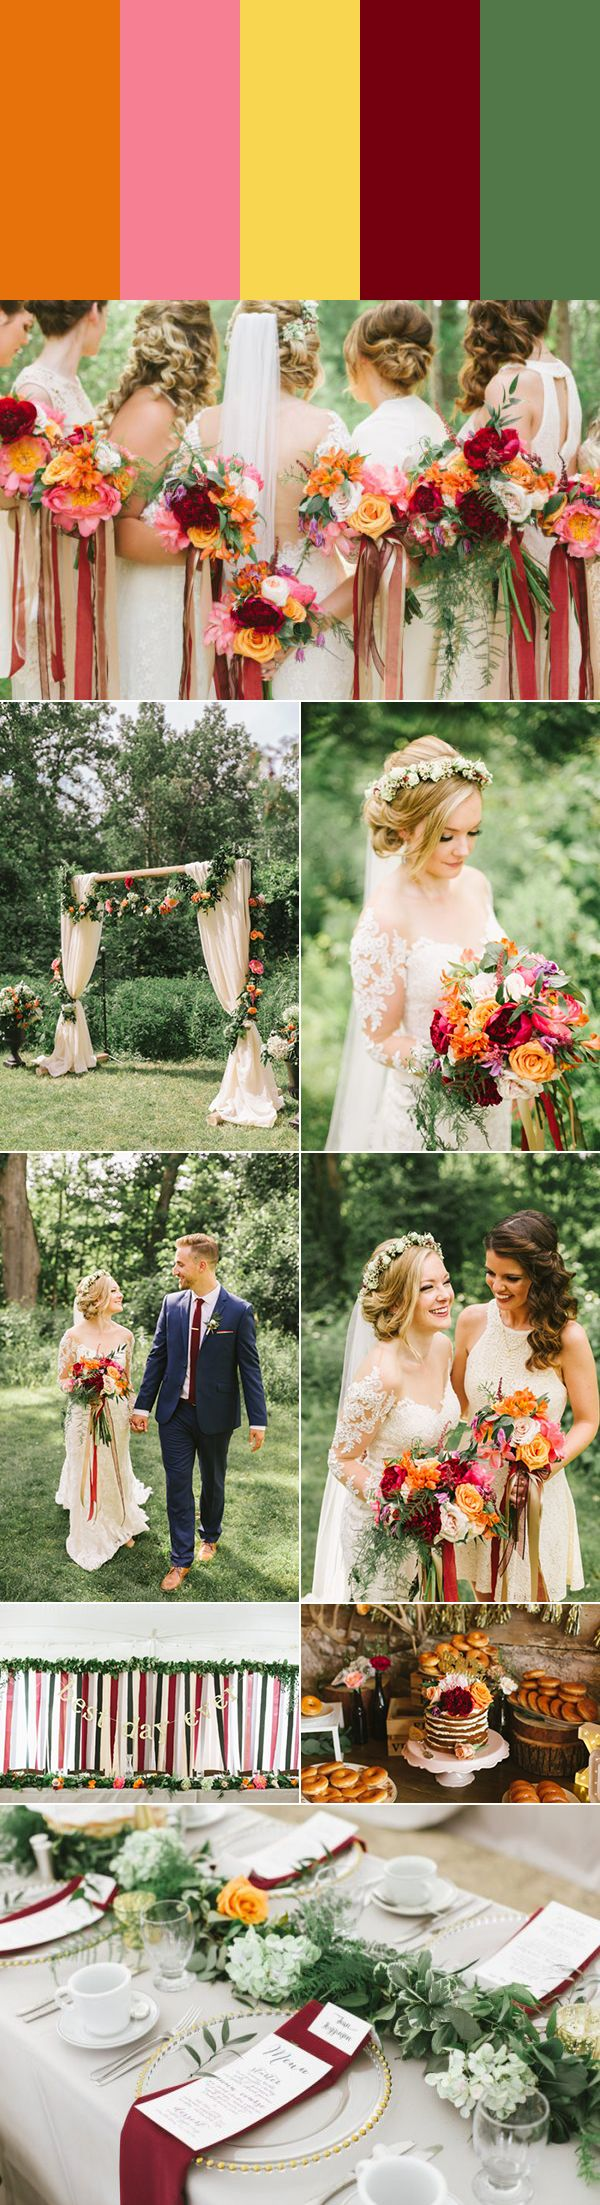 Carrot, peony, lemon, wine, and fern | Images by Oak & Myrrh Photography